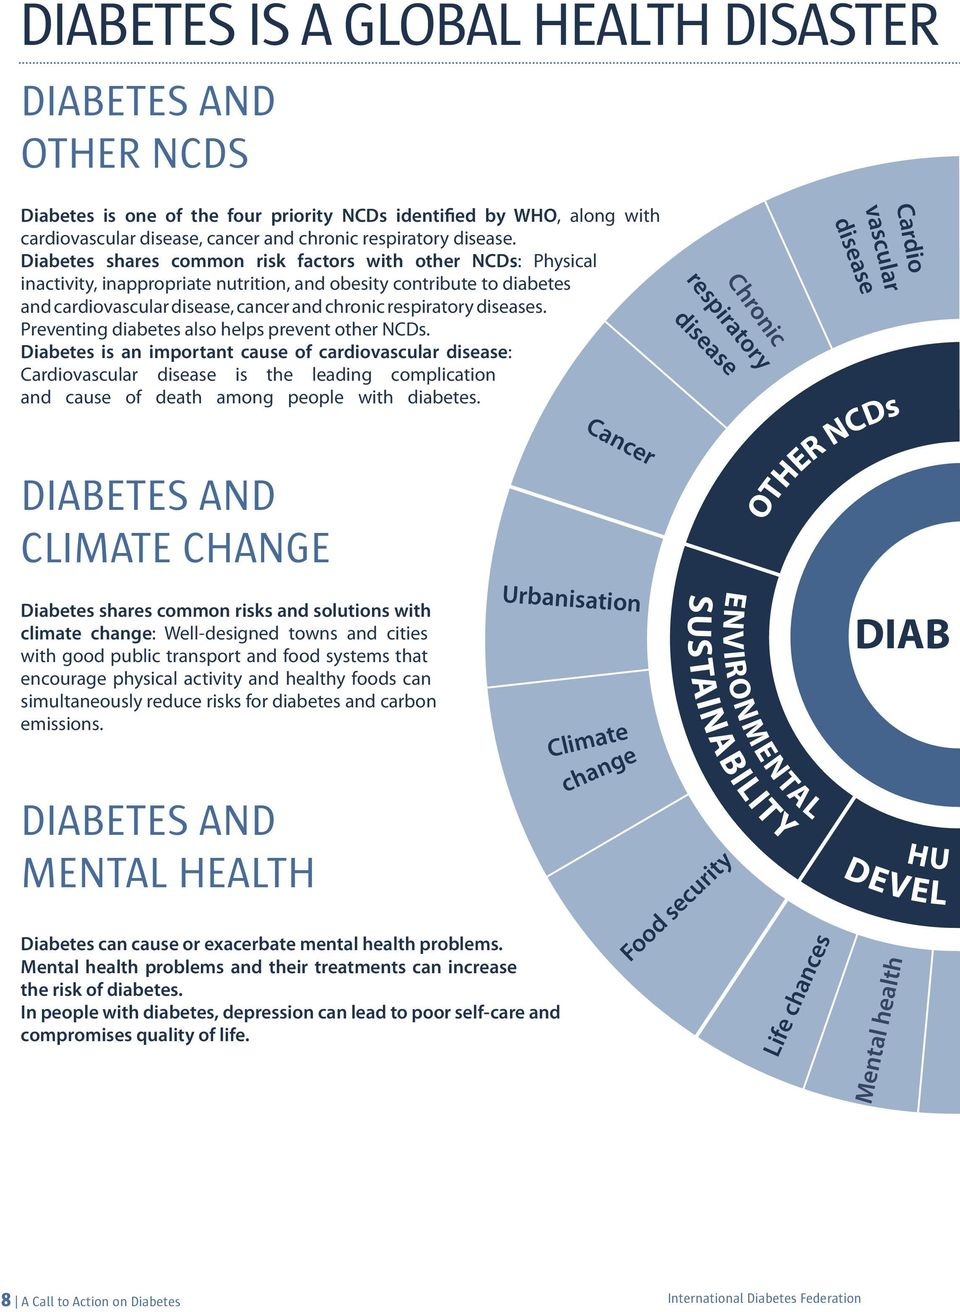 diseases. Preventing diabetes also helps prevent other NCDs.